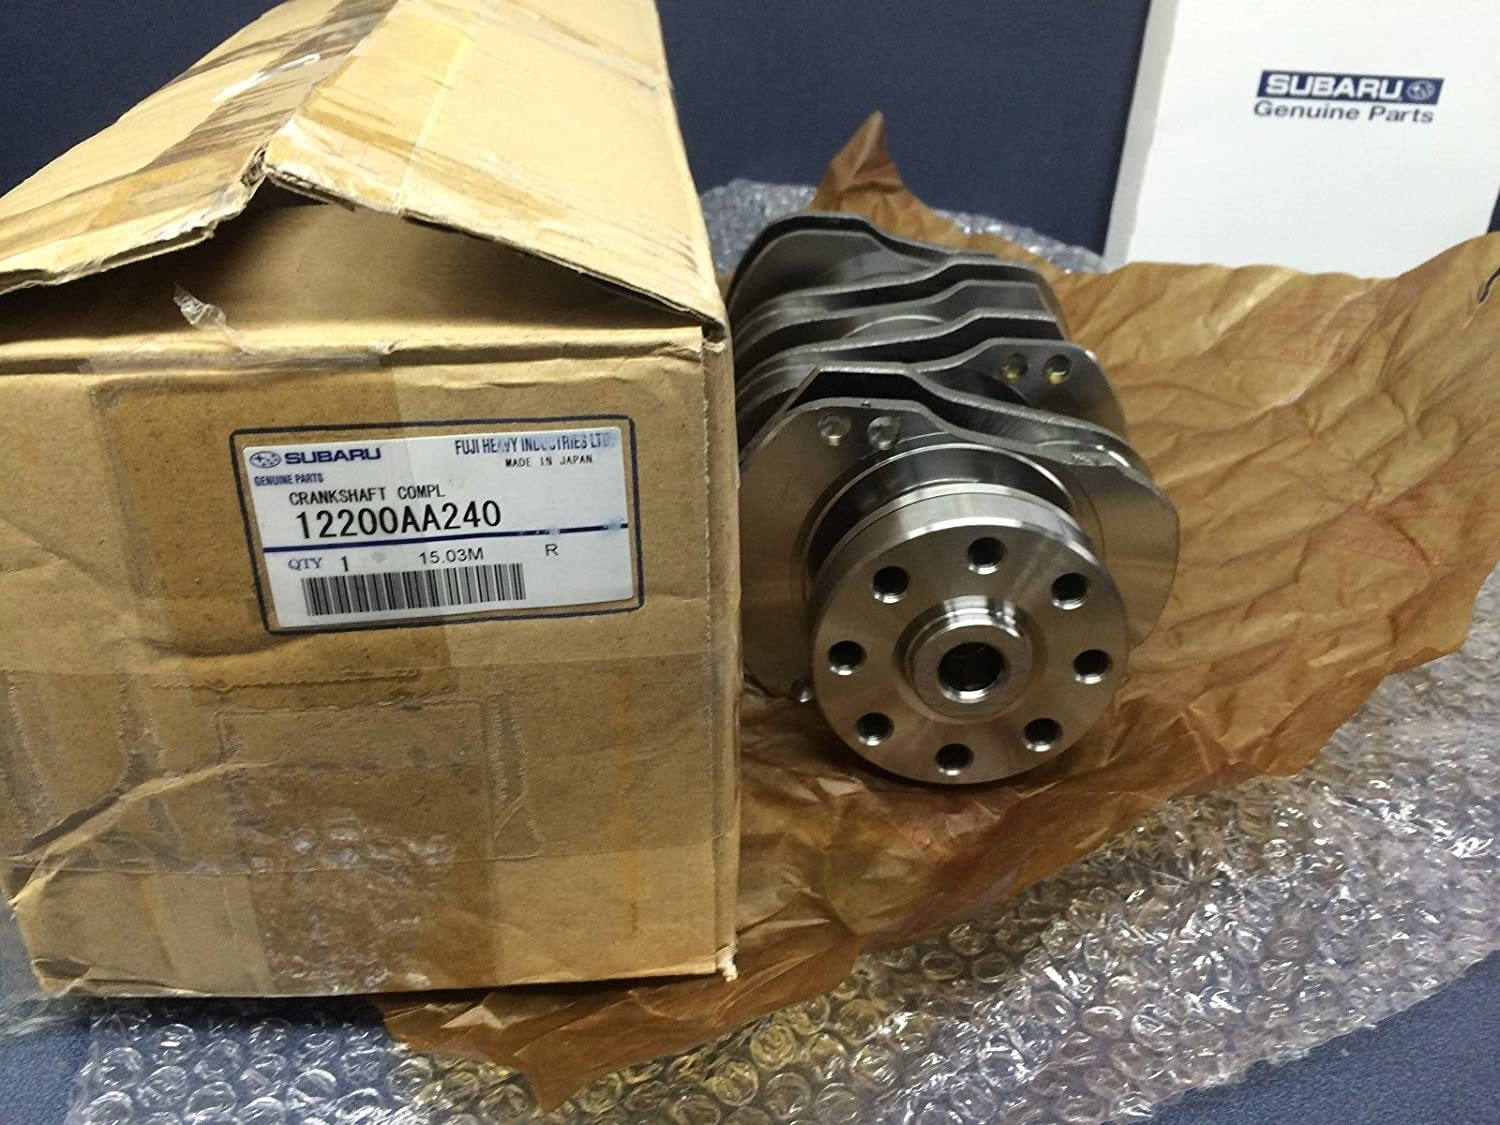 Genuine OEM Subaru Crankshaft EJ205 Impreza WRX 2.0L 12200AA240 EJ207 NEW IN BOX